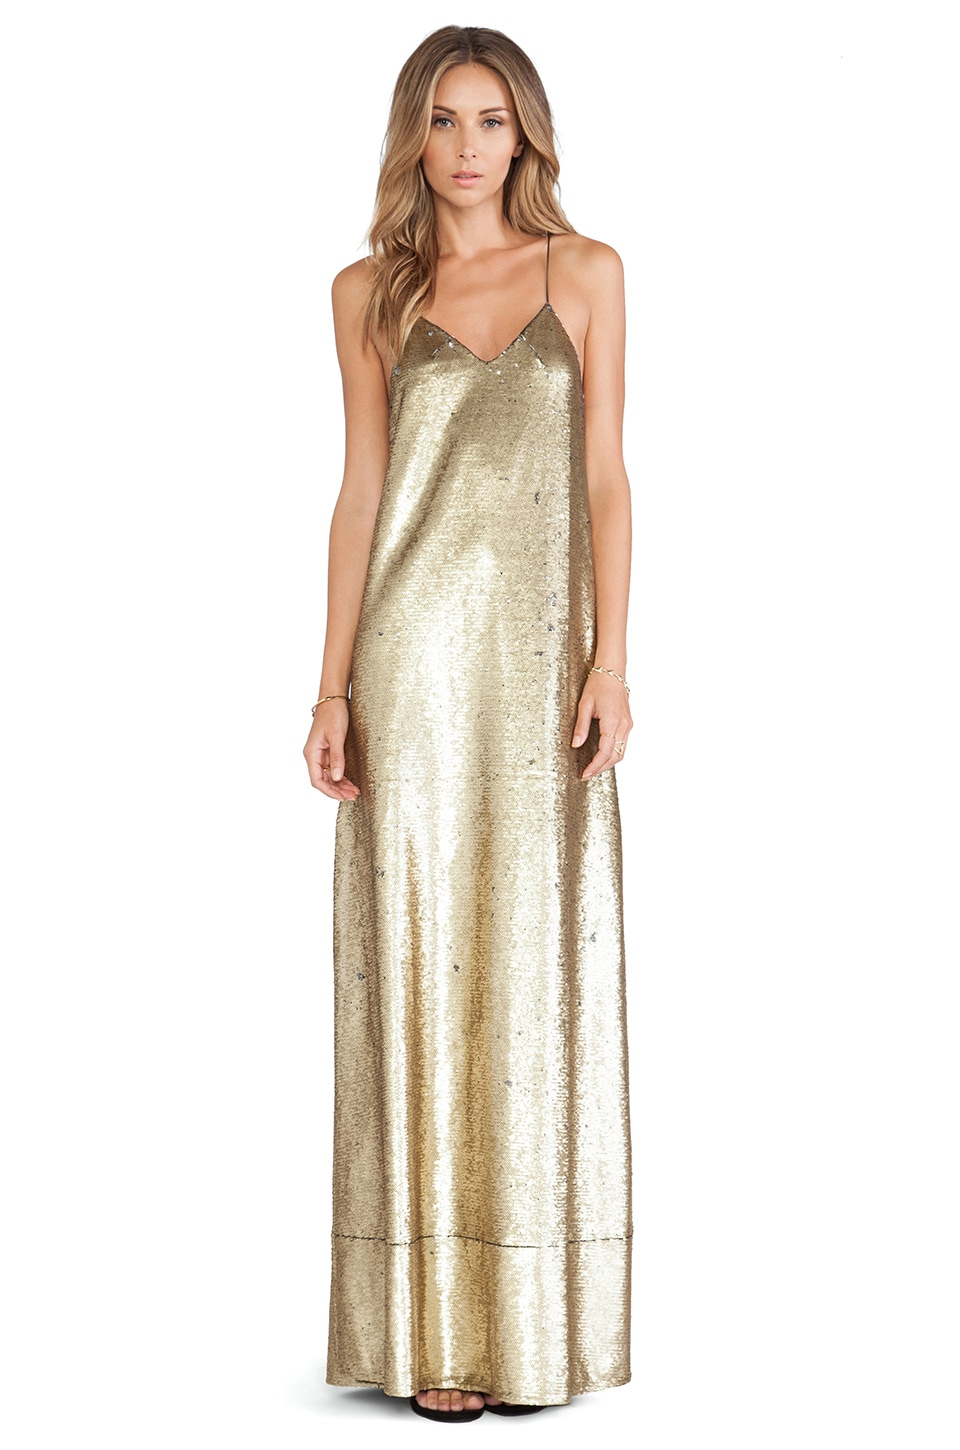 Finders Keepers Dream On Maxi Dress in Gold